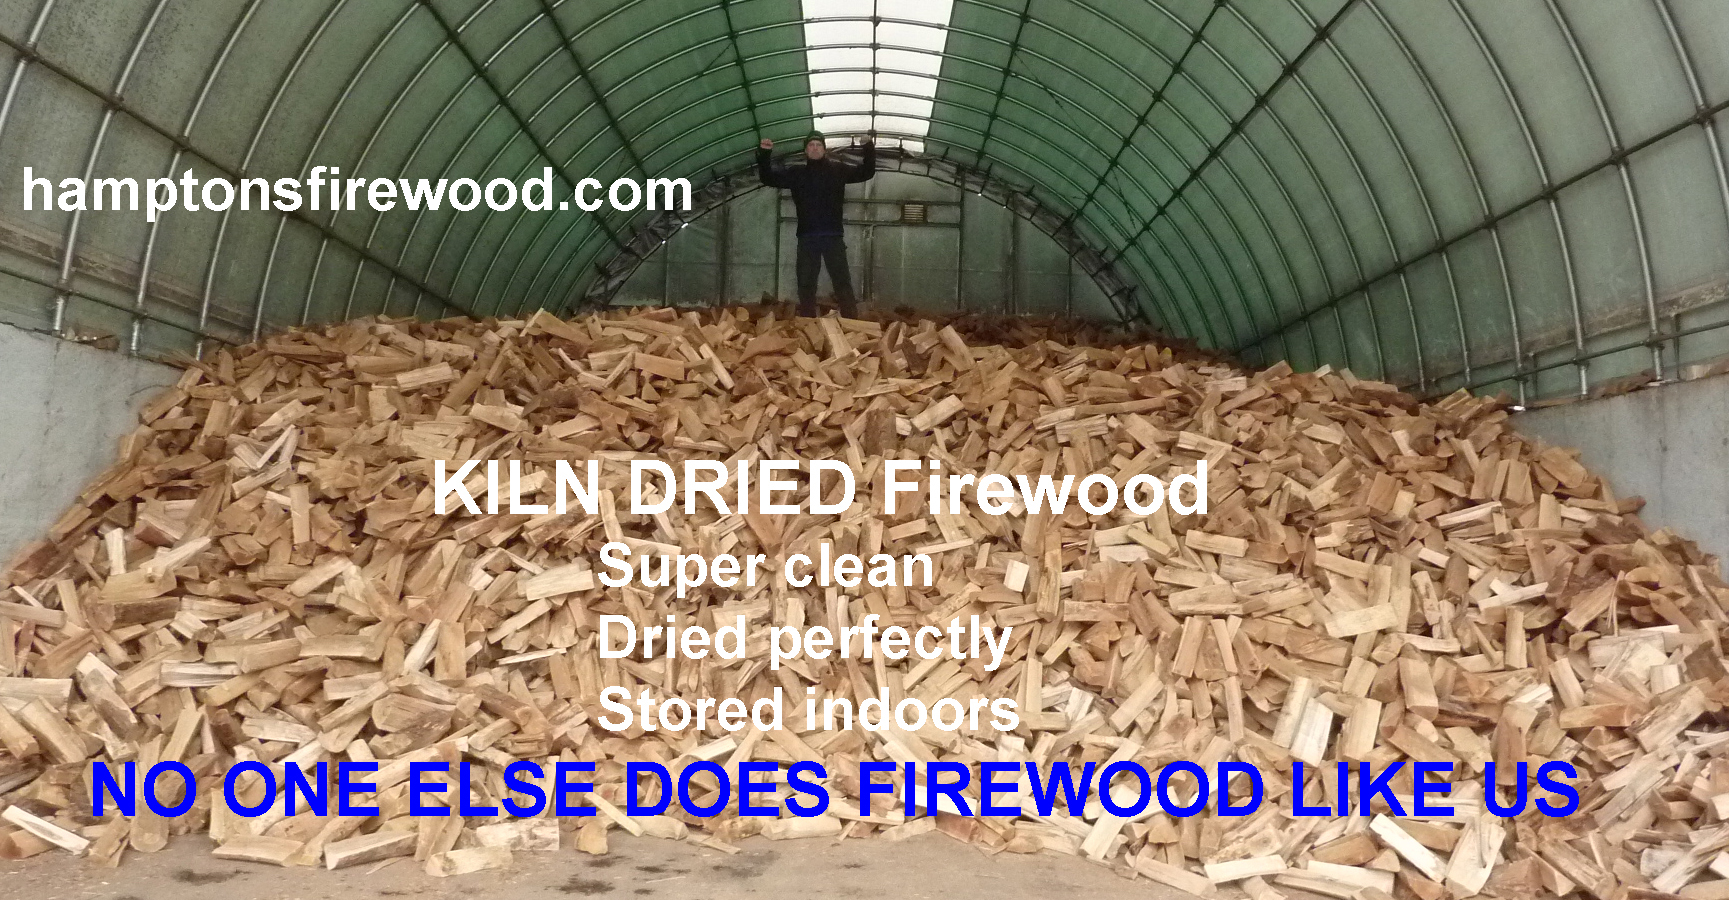 We are firewood experts